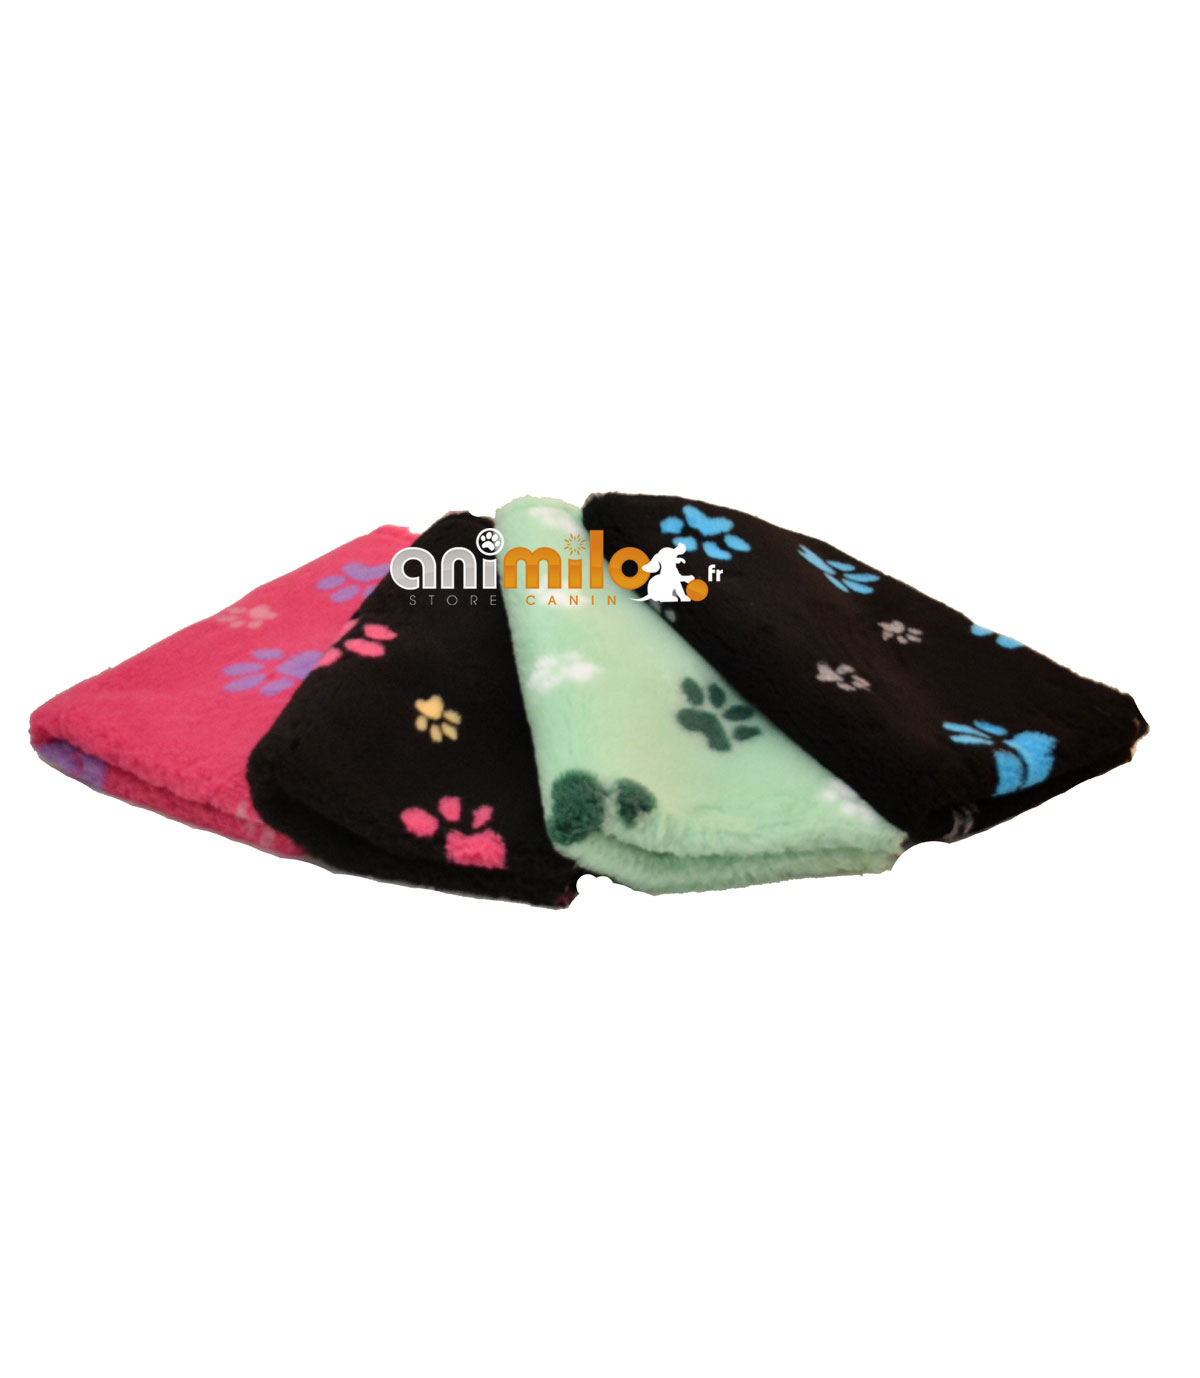 PROMO 3 pieces tapis confortbed vetbed dry extra 26 mm